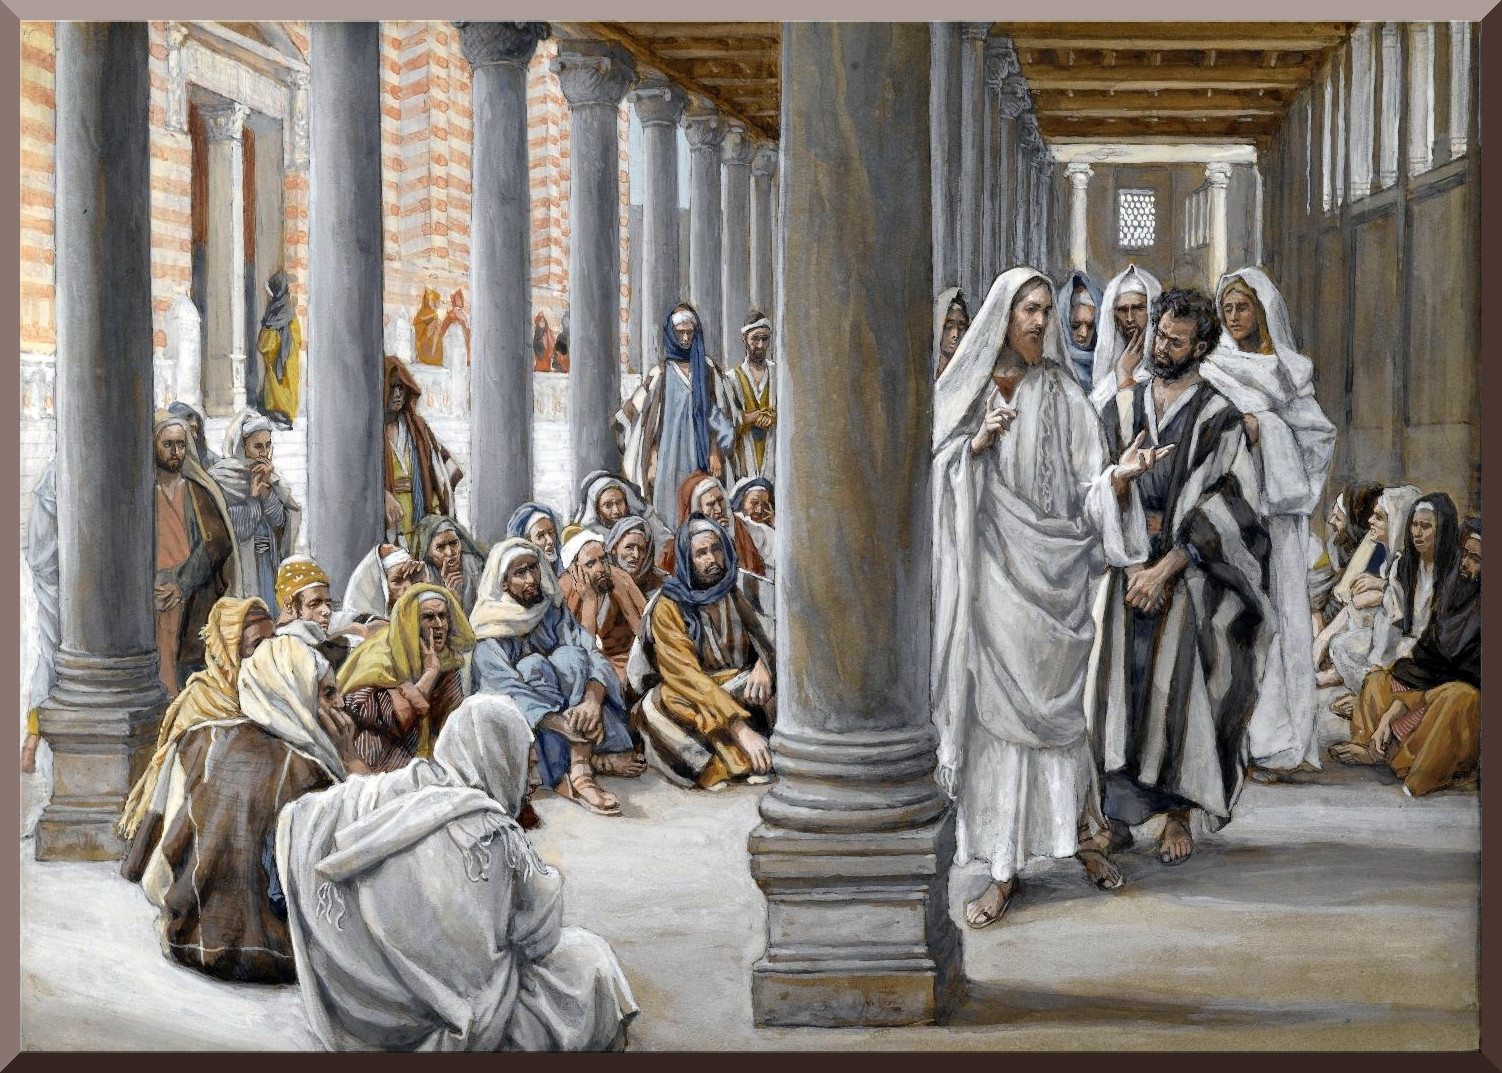 the temple and synagogues in jesus' Jesus is stated to have visited the temple in jerusalem, where the courtyard is described as being filled with livestock, merchants, and the tables of the money changers, who changed the standard greek and roman money for jewish and tyrian money.